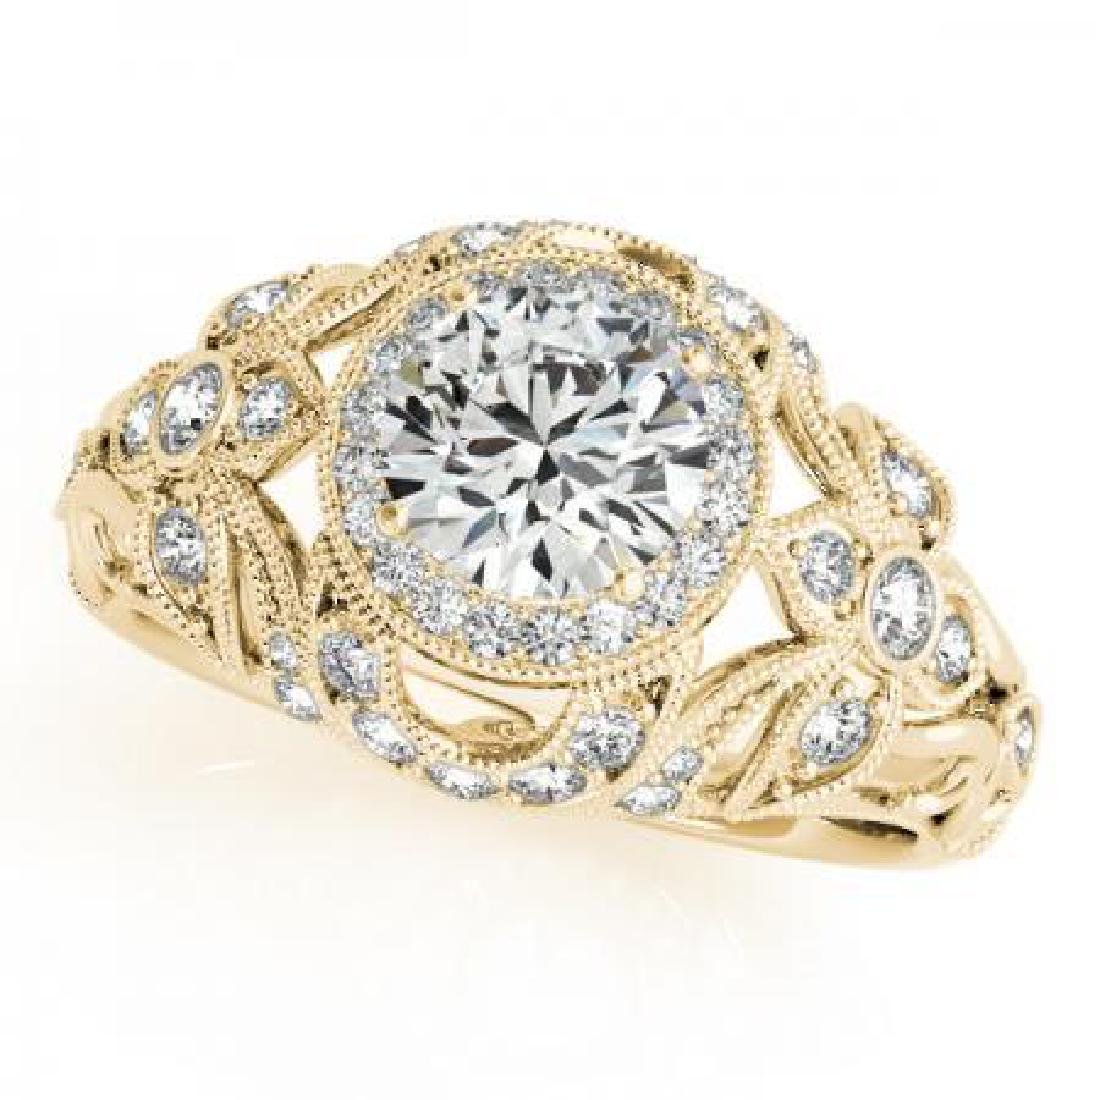 CERTIFIED 18K YELLOW GOLD .91 CT G-H/VS-SI1 DIAMOND HAL